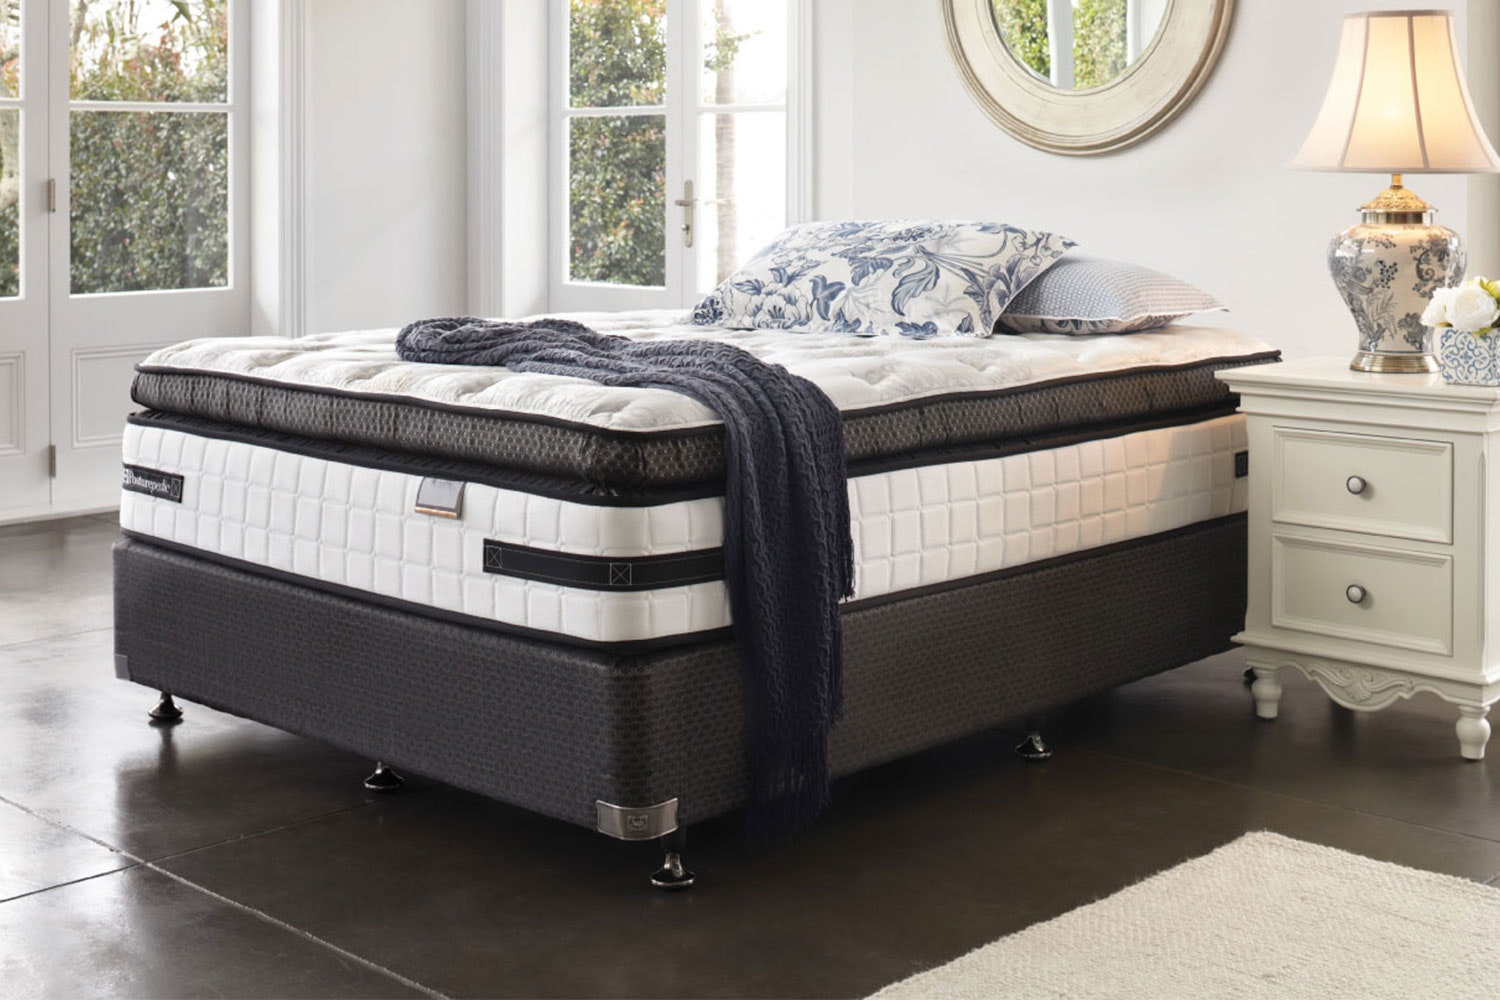 Kensington Ultra Plush Single Bed by Sealy Posturepedic